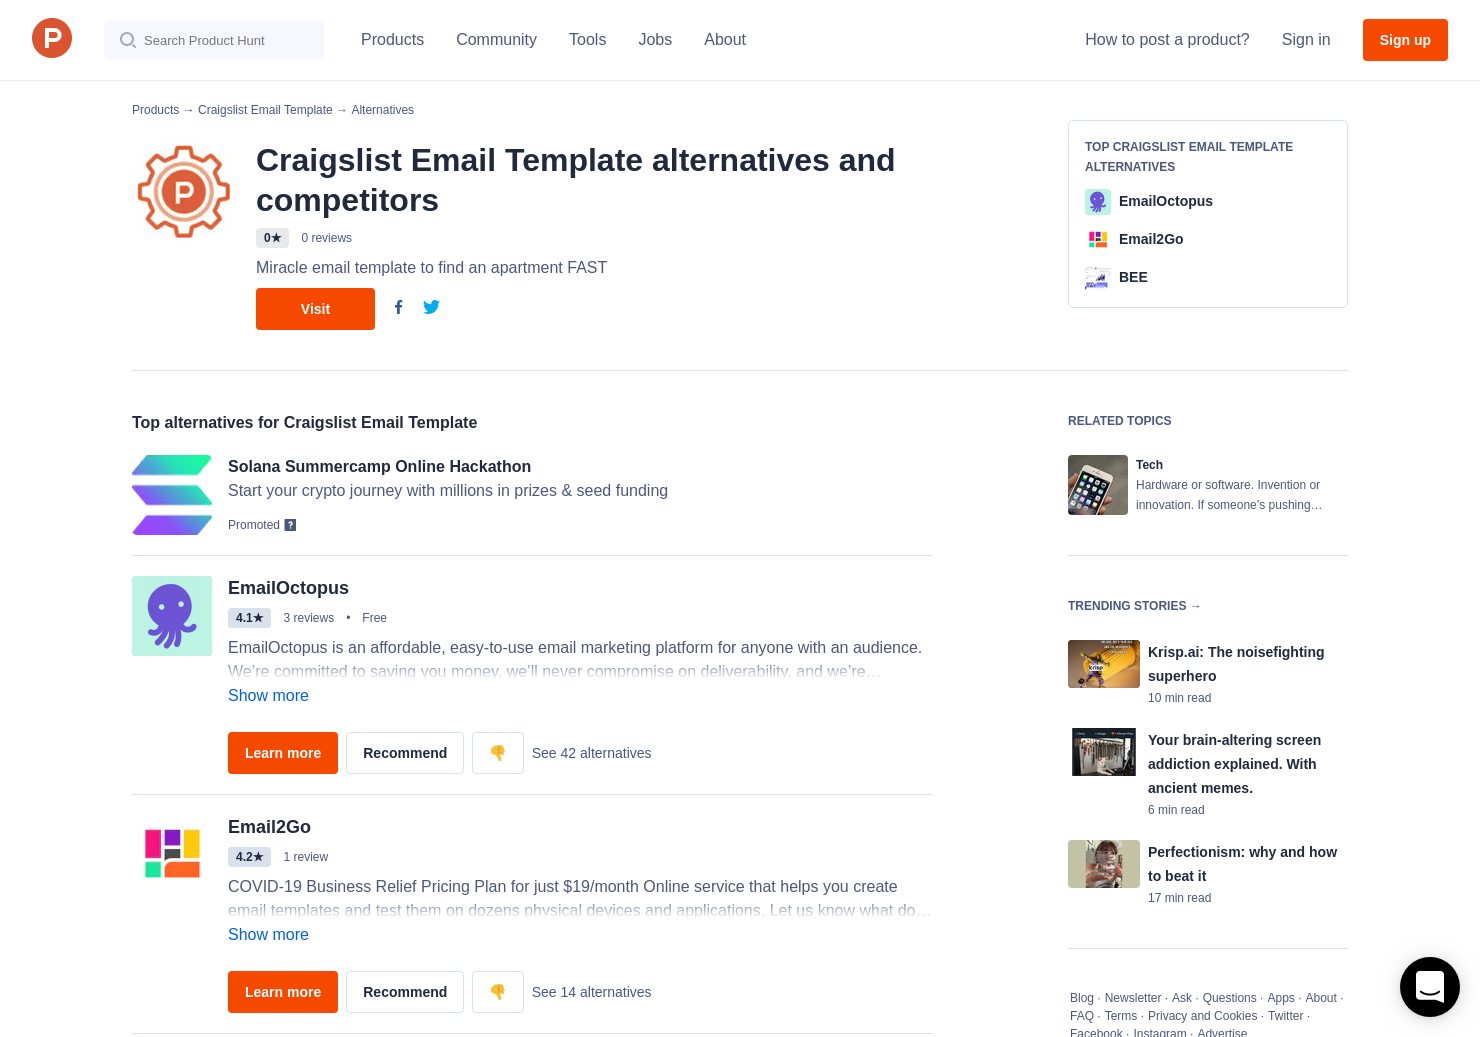 Craigslist Template | 5 Alternatives To Craigslist Email Template Product Hunt